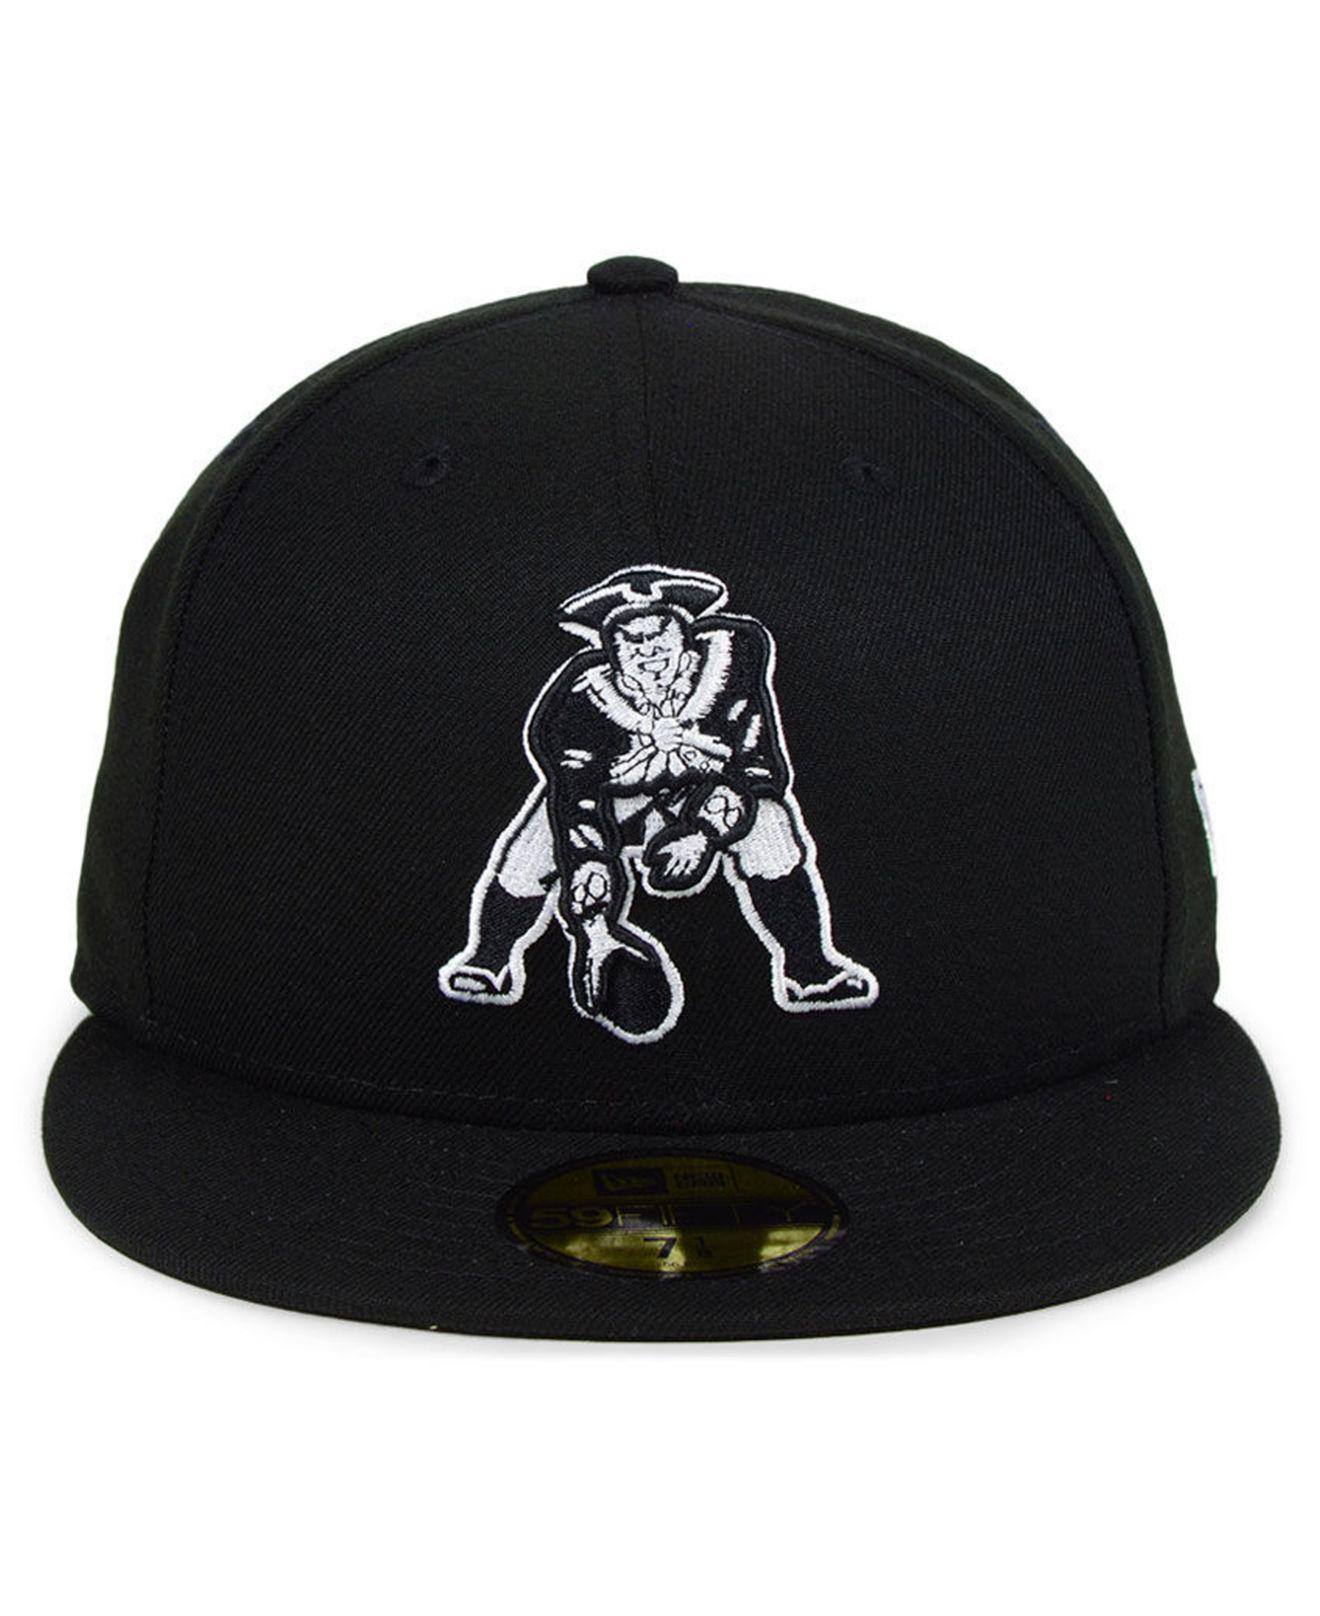 bdb9b1db0c6 Lyst - KTZ New England Patriots Black And White 59fifty Fitted Cap in Black  for Men